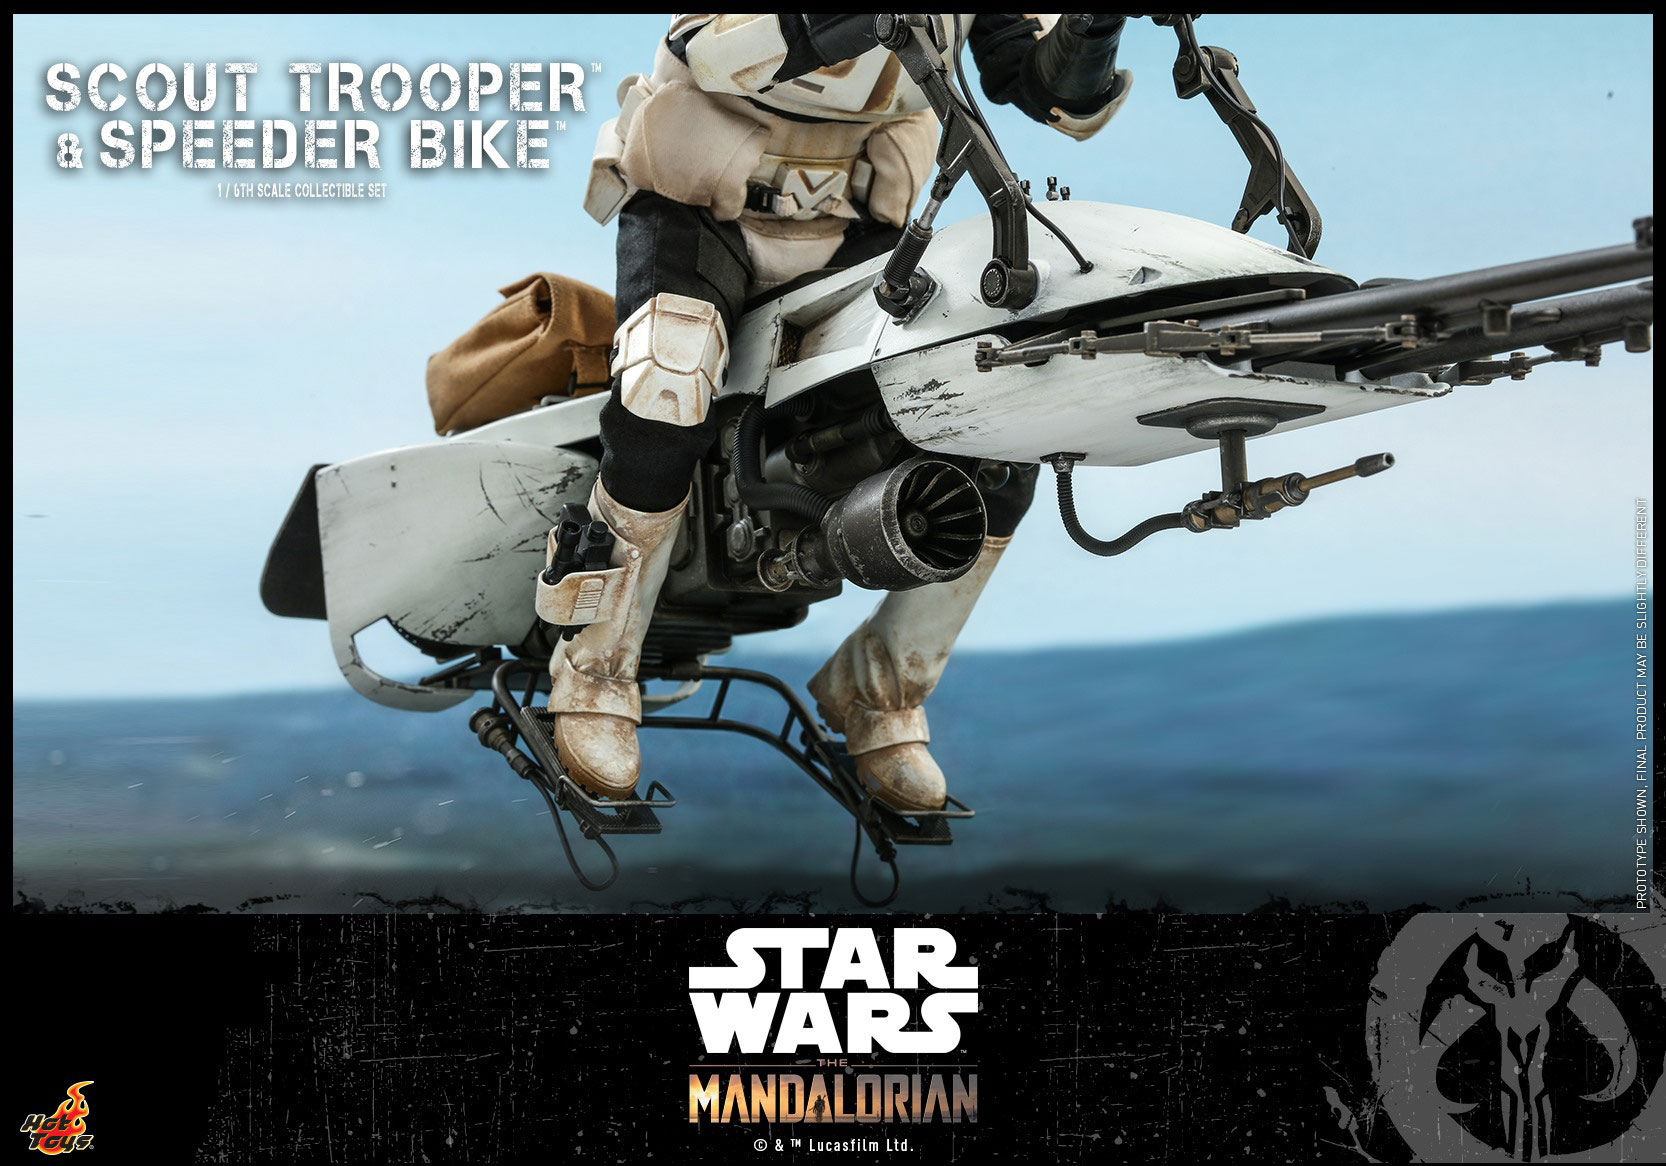 hot-toys-mandalorian-scout-trooper-speeder-bike